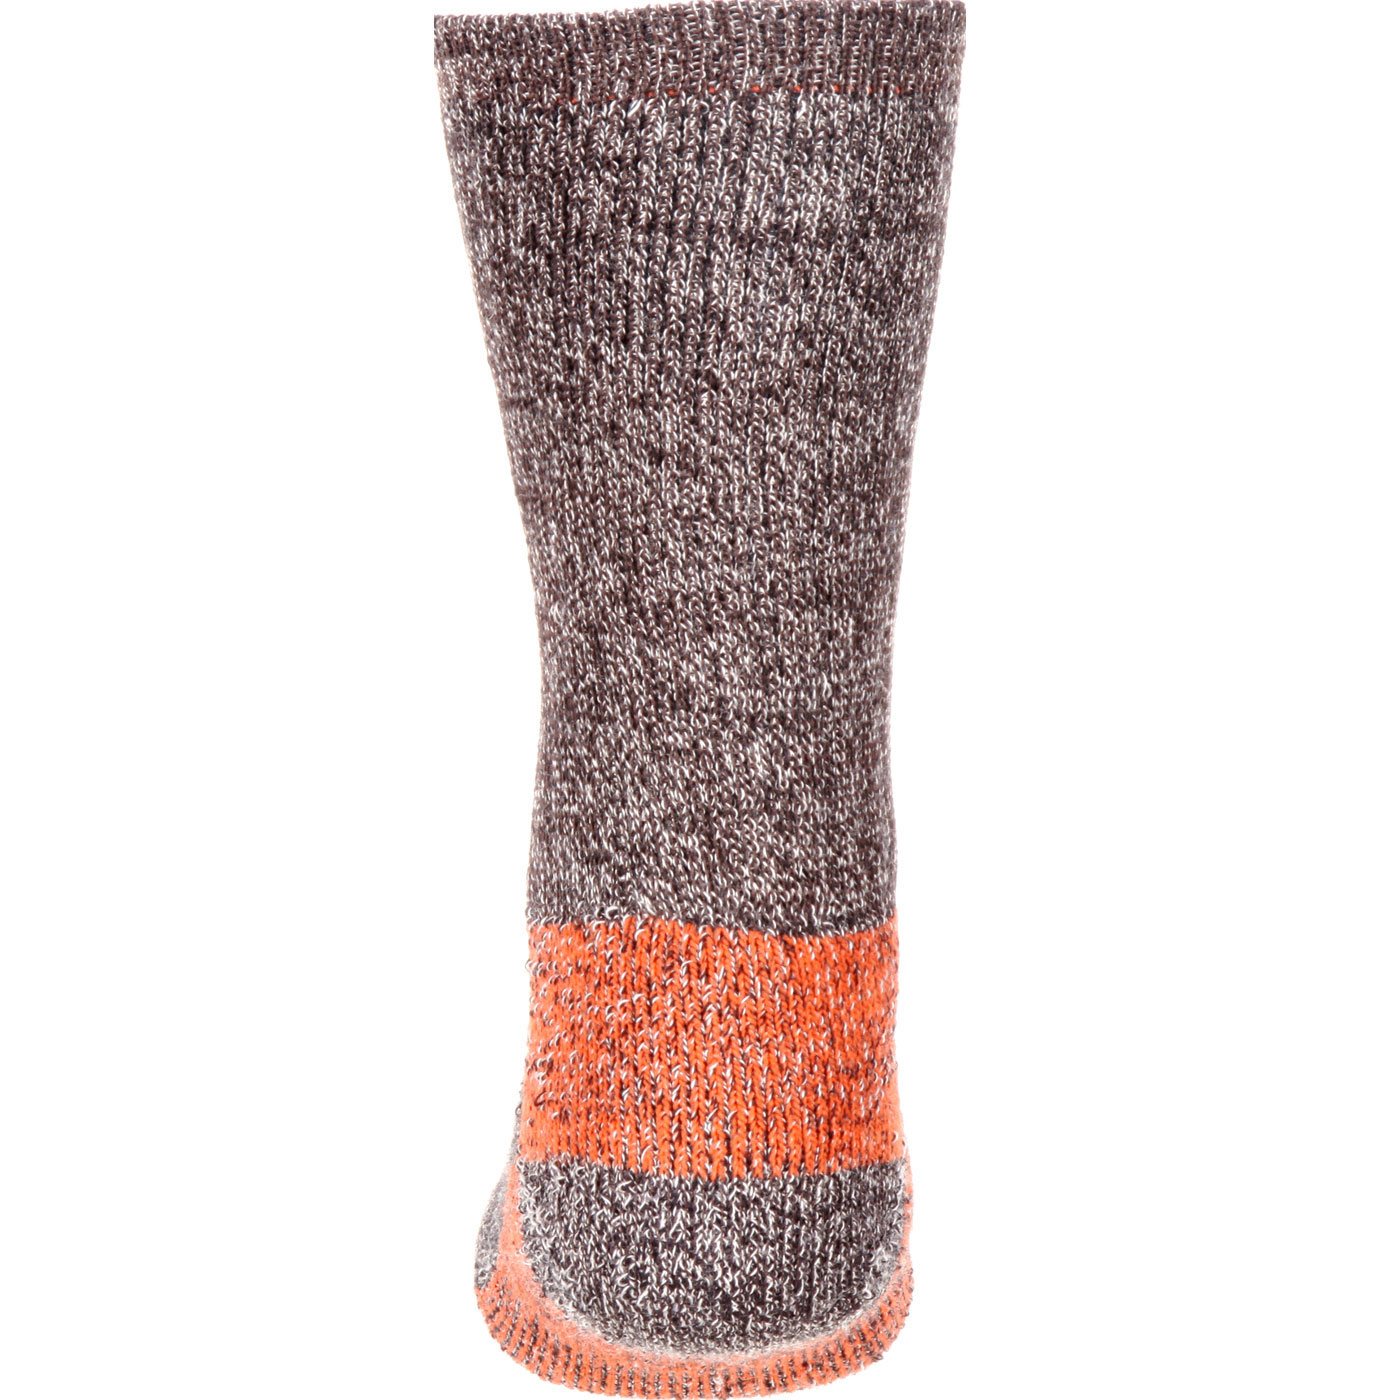 Georgia Boot Merino Lambs Wool Crew Sock, Mocha, small